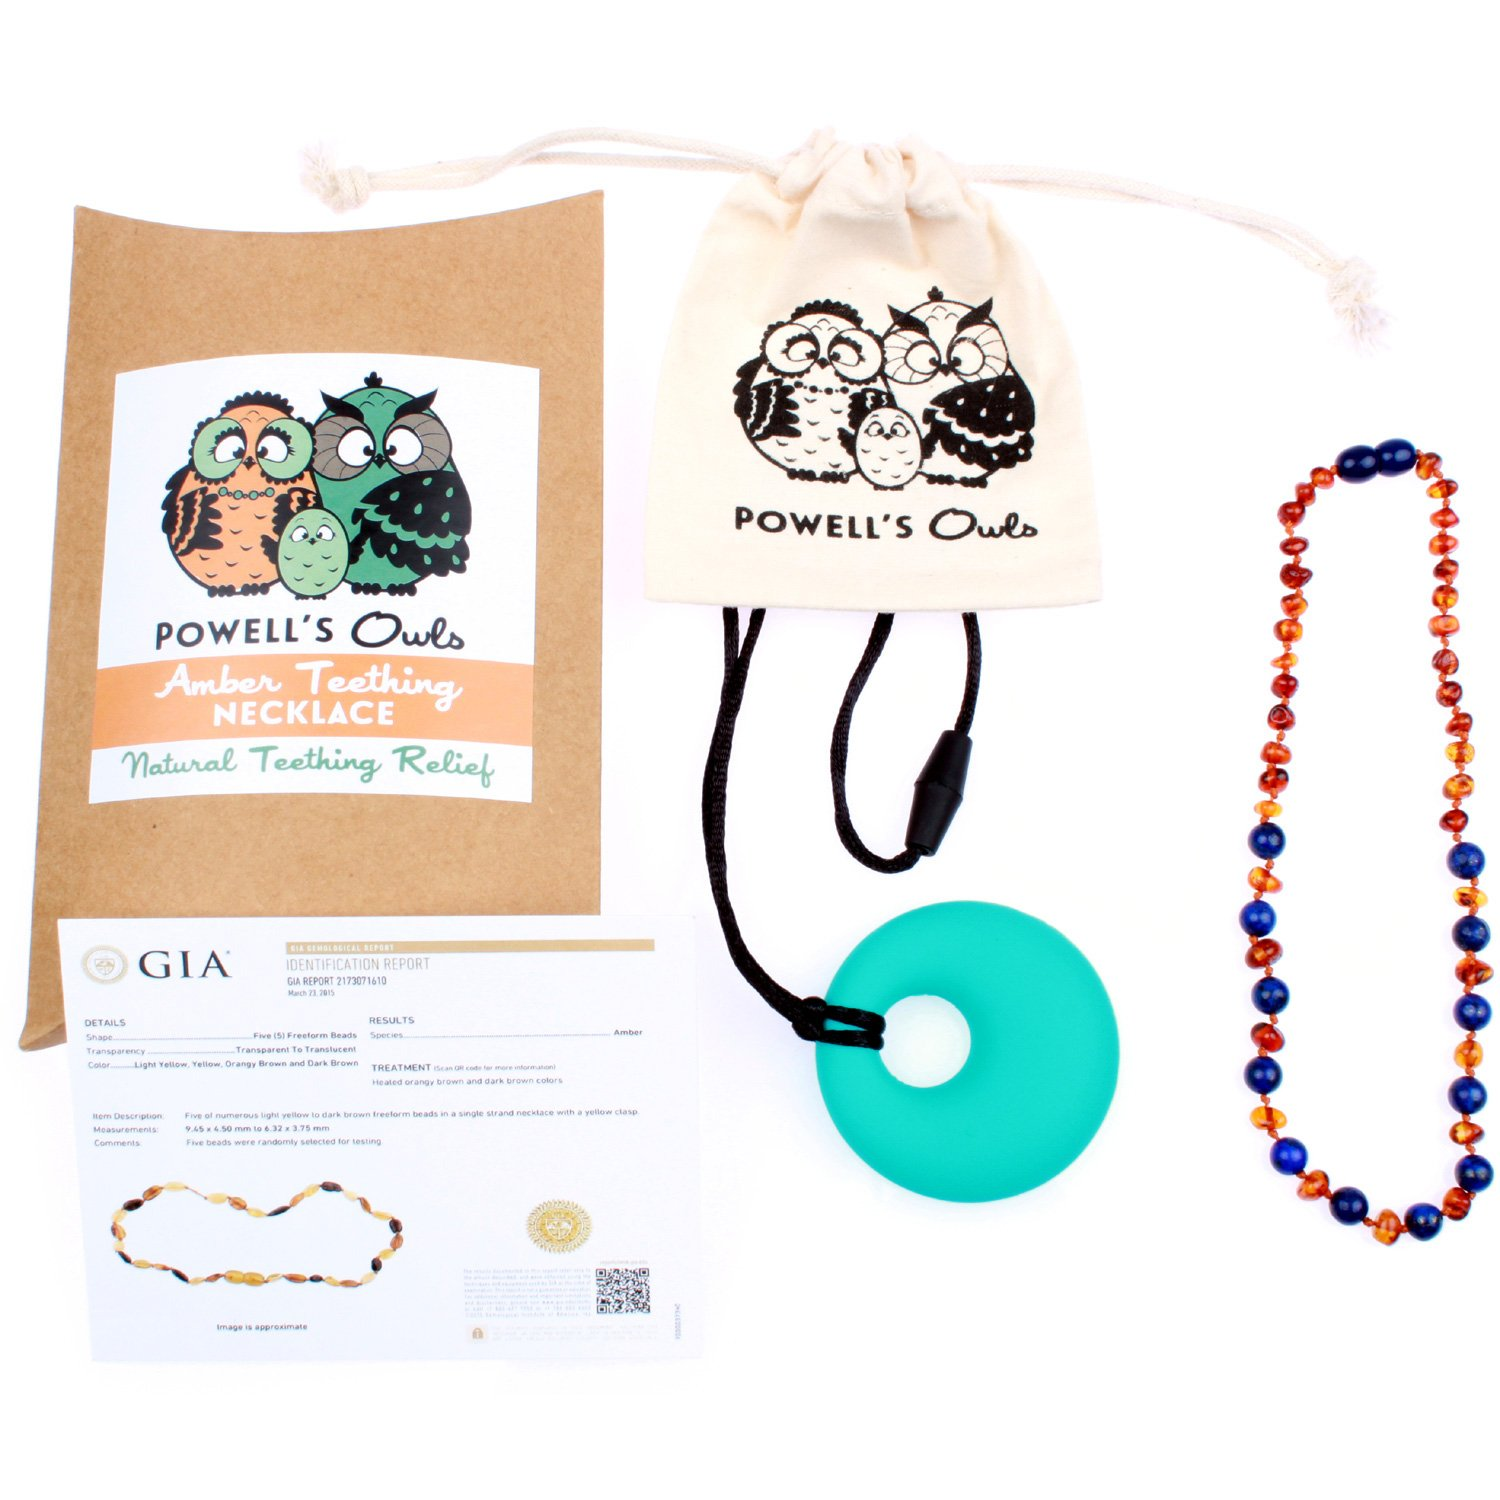 Baltic Amber Teething Necklace Gift Set + Free Silicone Teething Pendant ($15 Value) Handcrafted, 100% USA Lab-Tested Authentic Amber - All Natural Teething Pain Relief (Lapis/Cognac - 12.5 Inches) by Powell's Owls